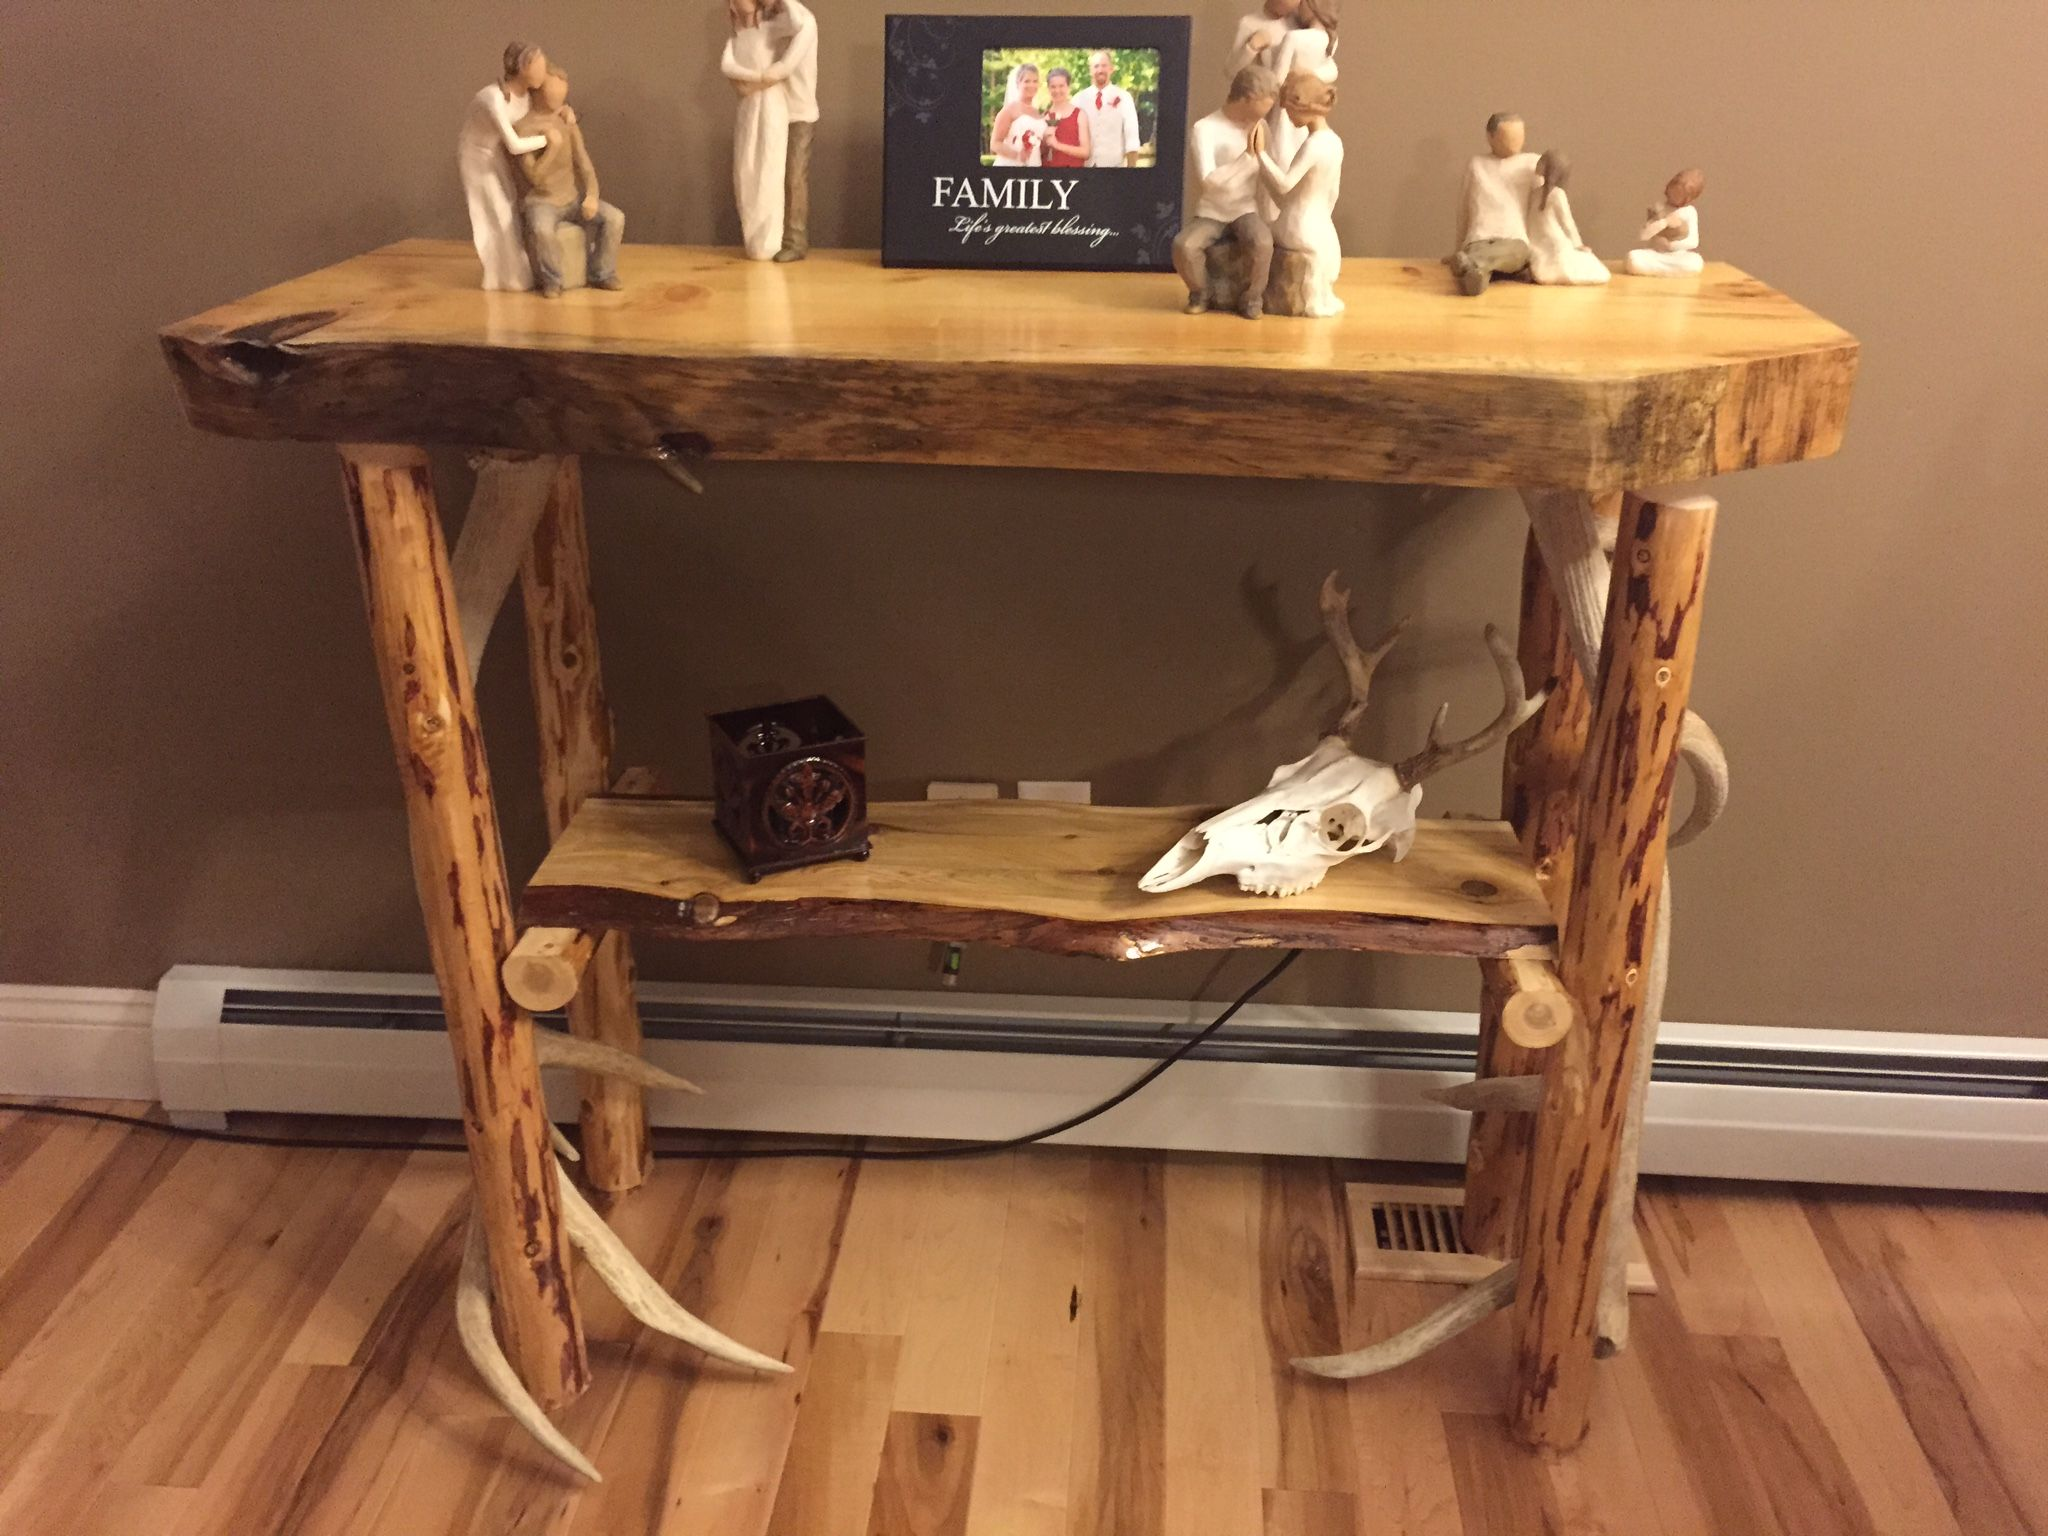 Log and antler sofa table Top is made from 3 inch thick pine